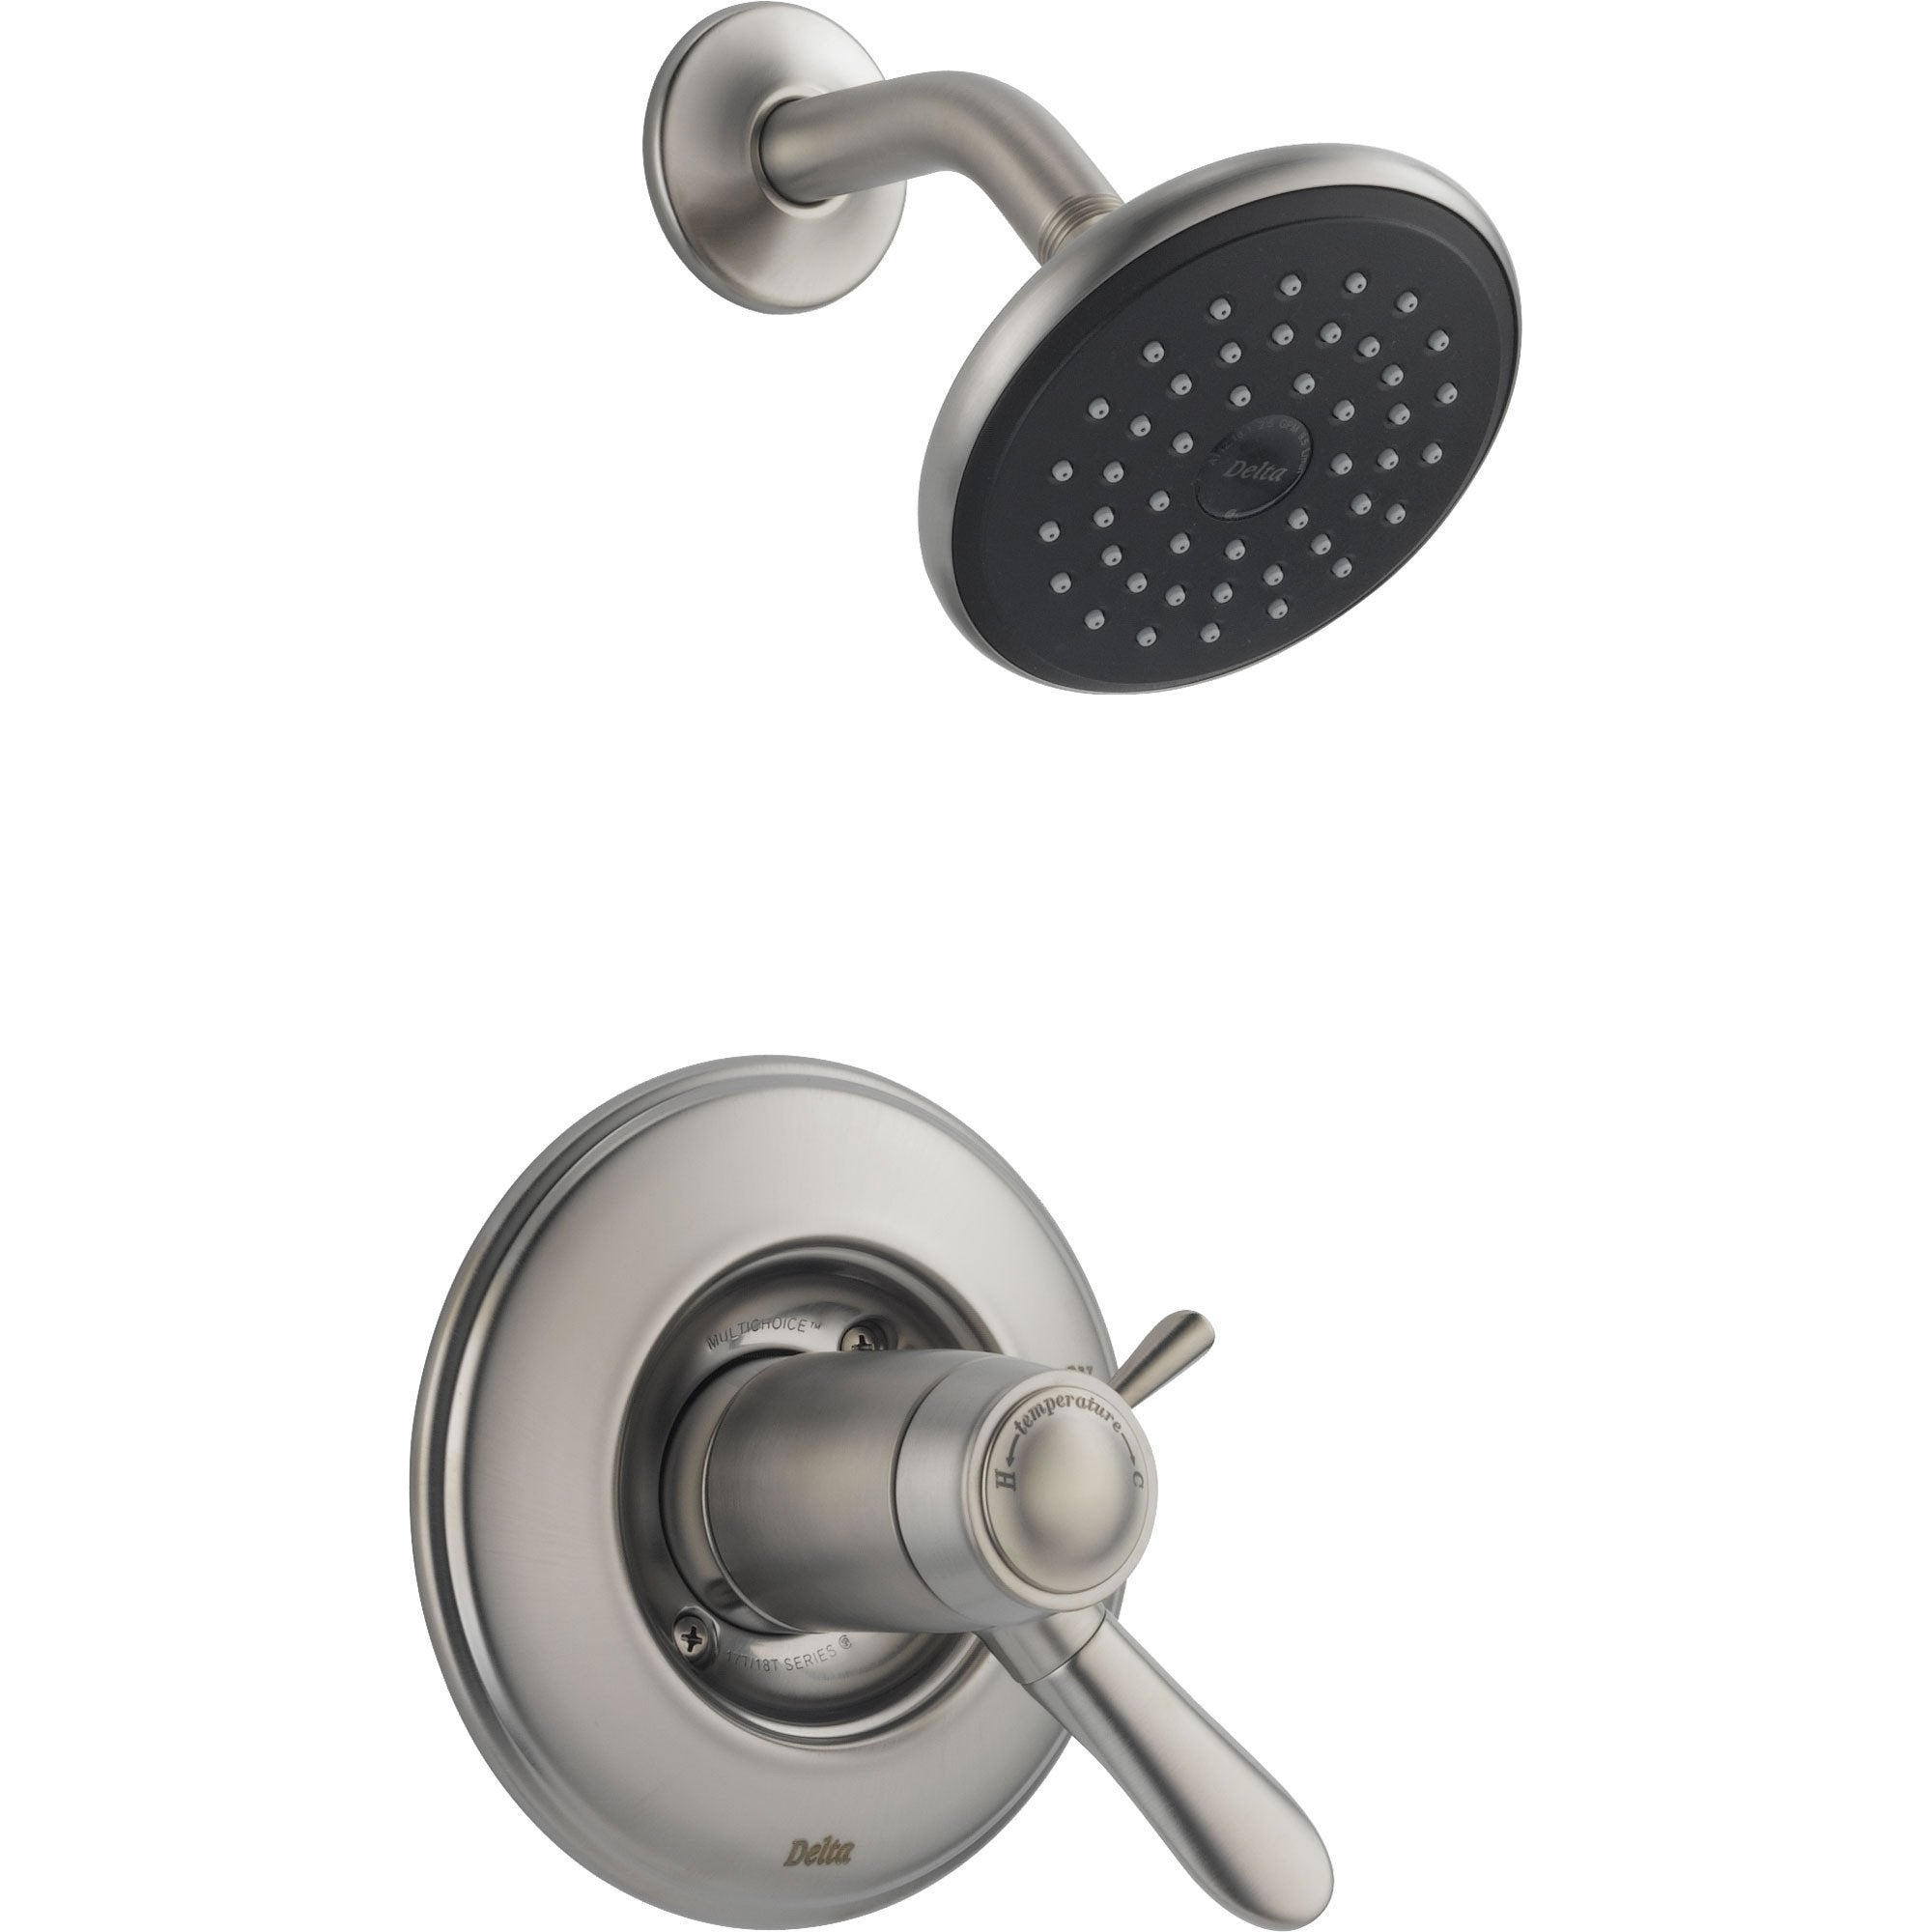 Delta Lahara Stainless Steel Thermostatic Control Shower Faucet with Valve D830V